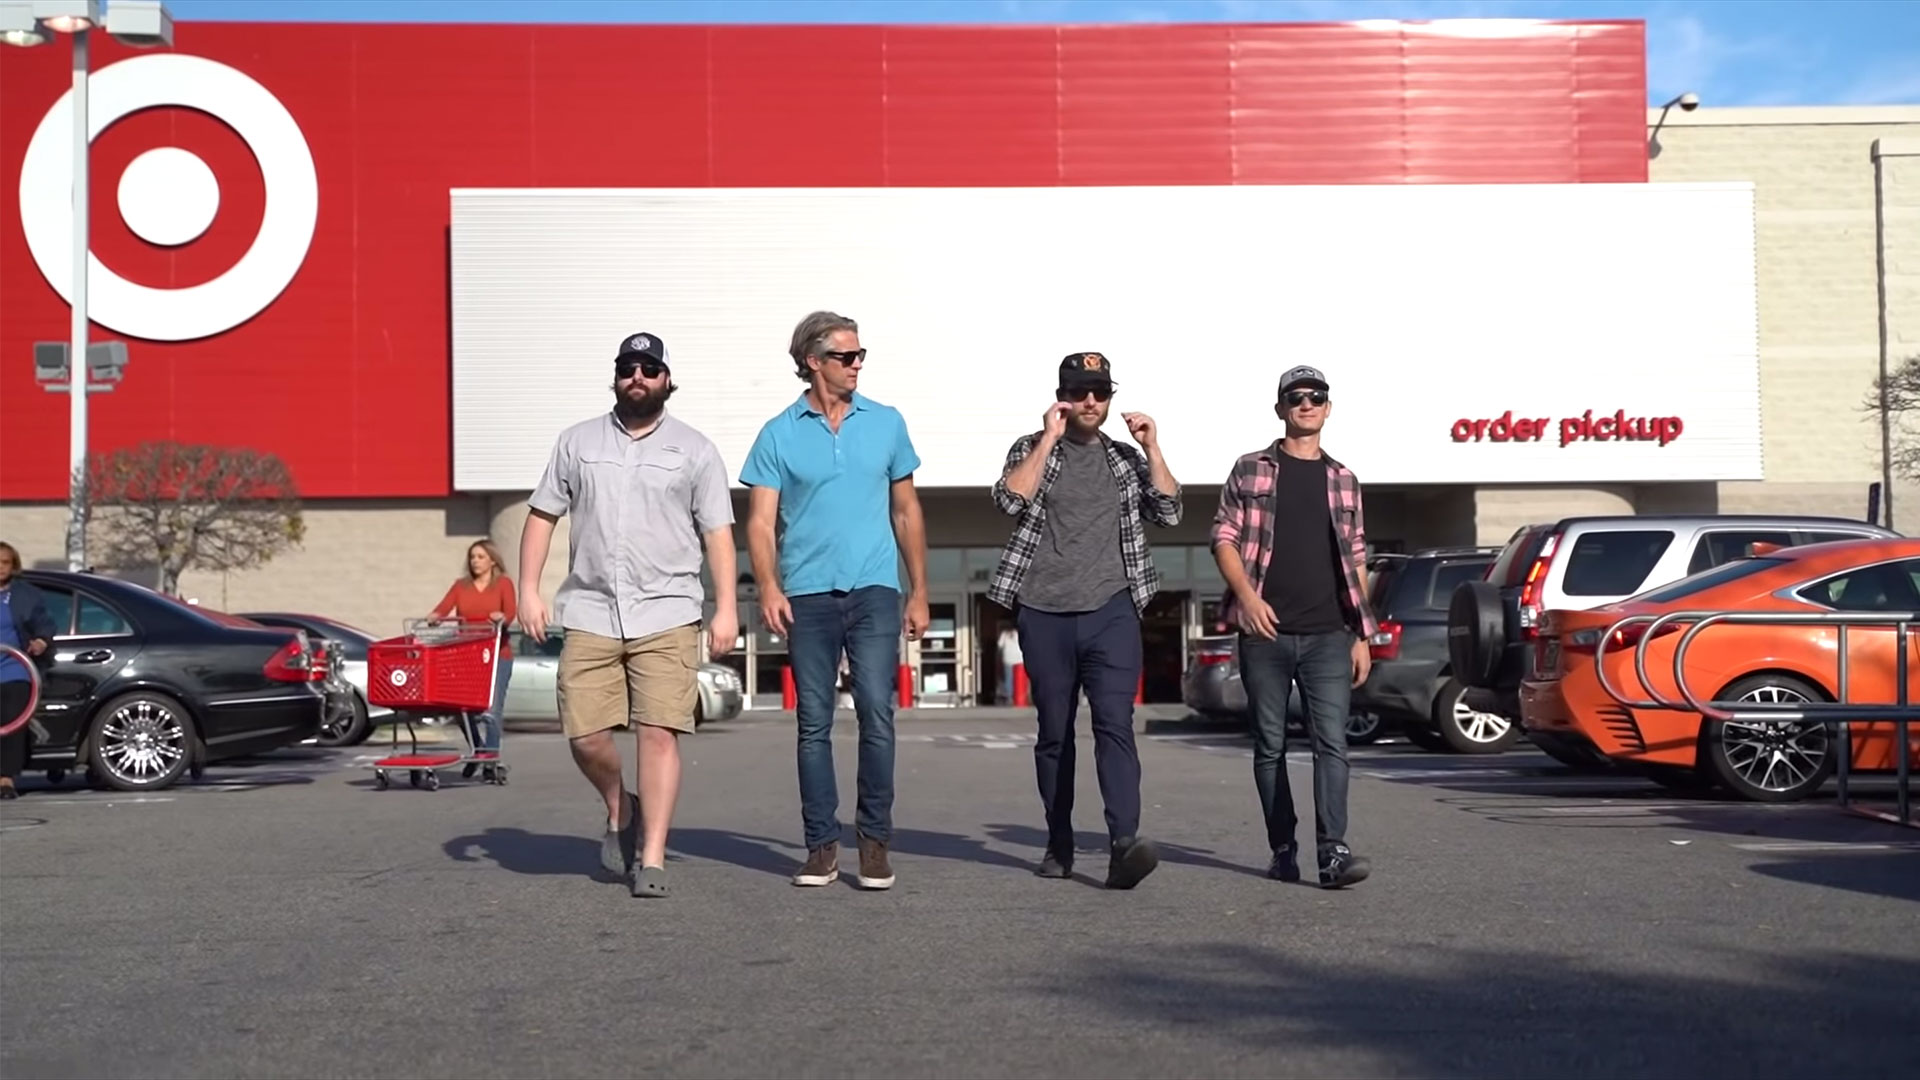 Husbands of Women Who Love Target Band Together in Hilarious Parody Video